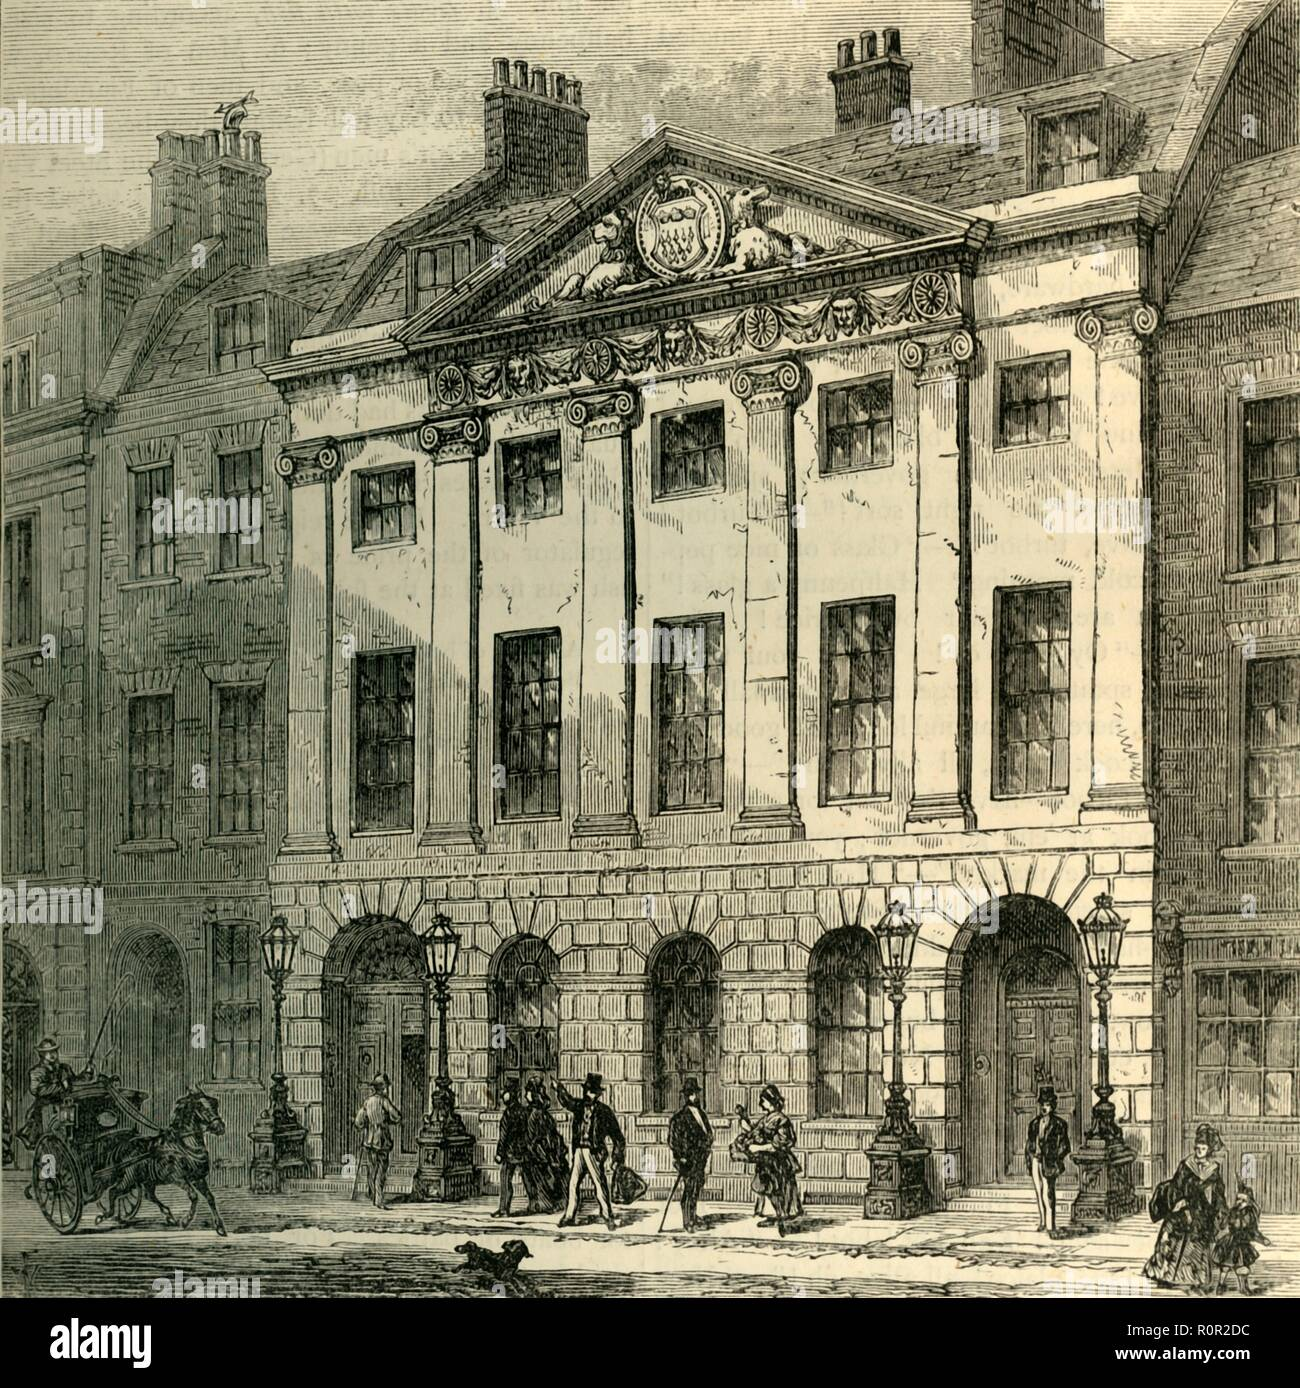 'Hall of the Skinners' Company', c1872. Skinners' Hall, Dowgate Hill, City of London, home of the Worshipful Company of Skinners. The building, designed by William Jupp, was constructed 1770-1790. From Old and New London, Vol. II: A Narrative of Its History, Its People, and Its Places, by Walter Thornbury. [Cassell, Petter, Galpin & Co., London, Paris & New York] - Stock Image